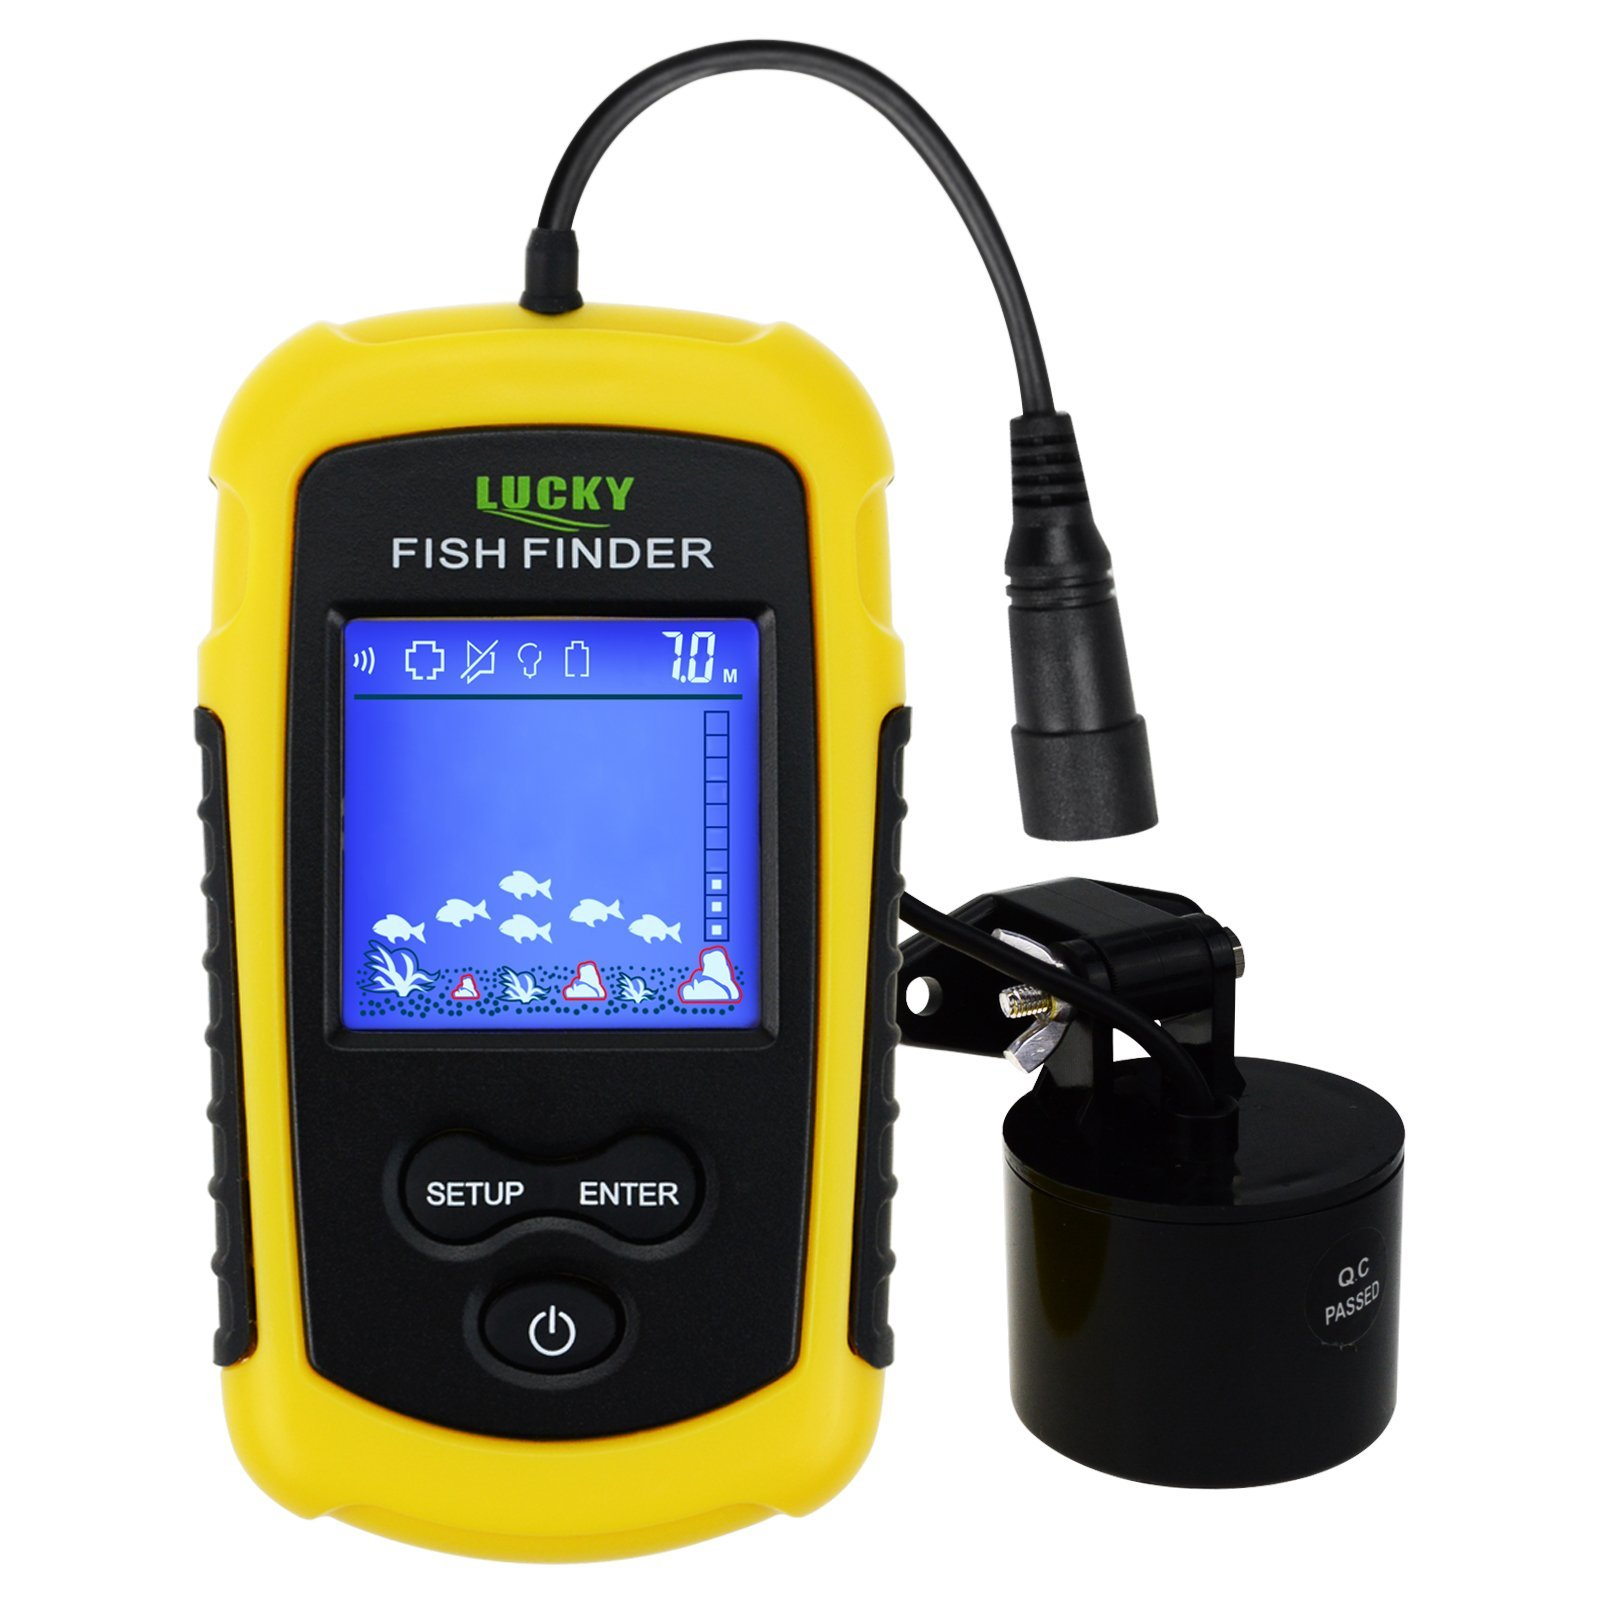 Lucky Portable Fish Finder Sonar, TN/Anti-UV LCD Display LED Backlight for Night Fishing, Wired w/Alarm, 100M (328ft) Depth Detection, Turbid Water, Reservoir, River, Lake, Boat Kayak Ice Fishing by Gain Express